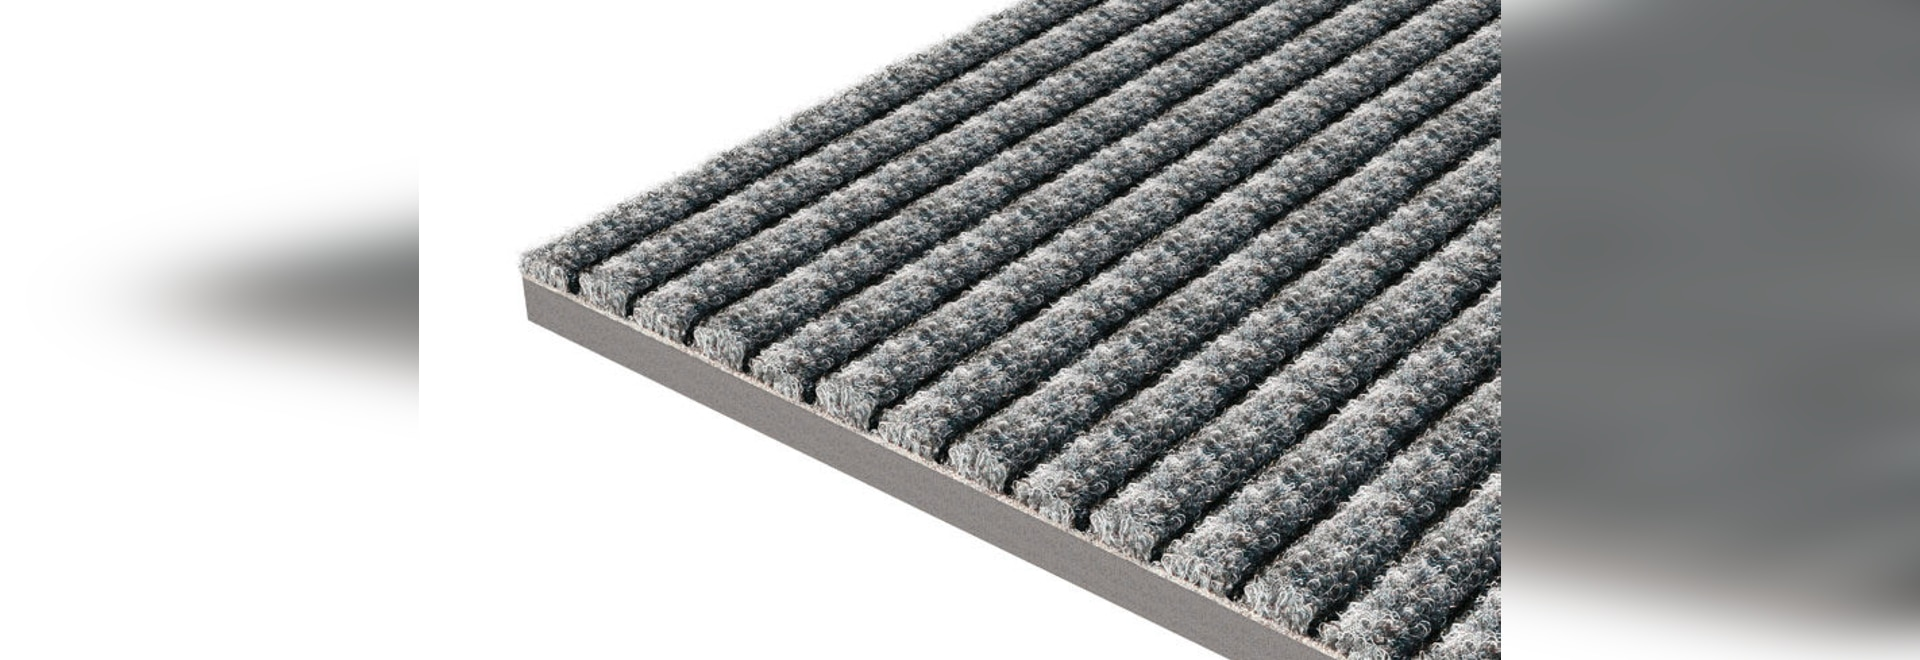 NEW: dust control entrance mat by Geggus